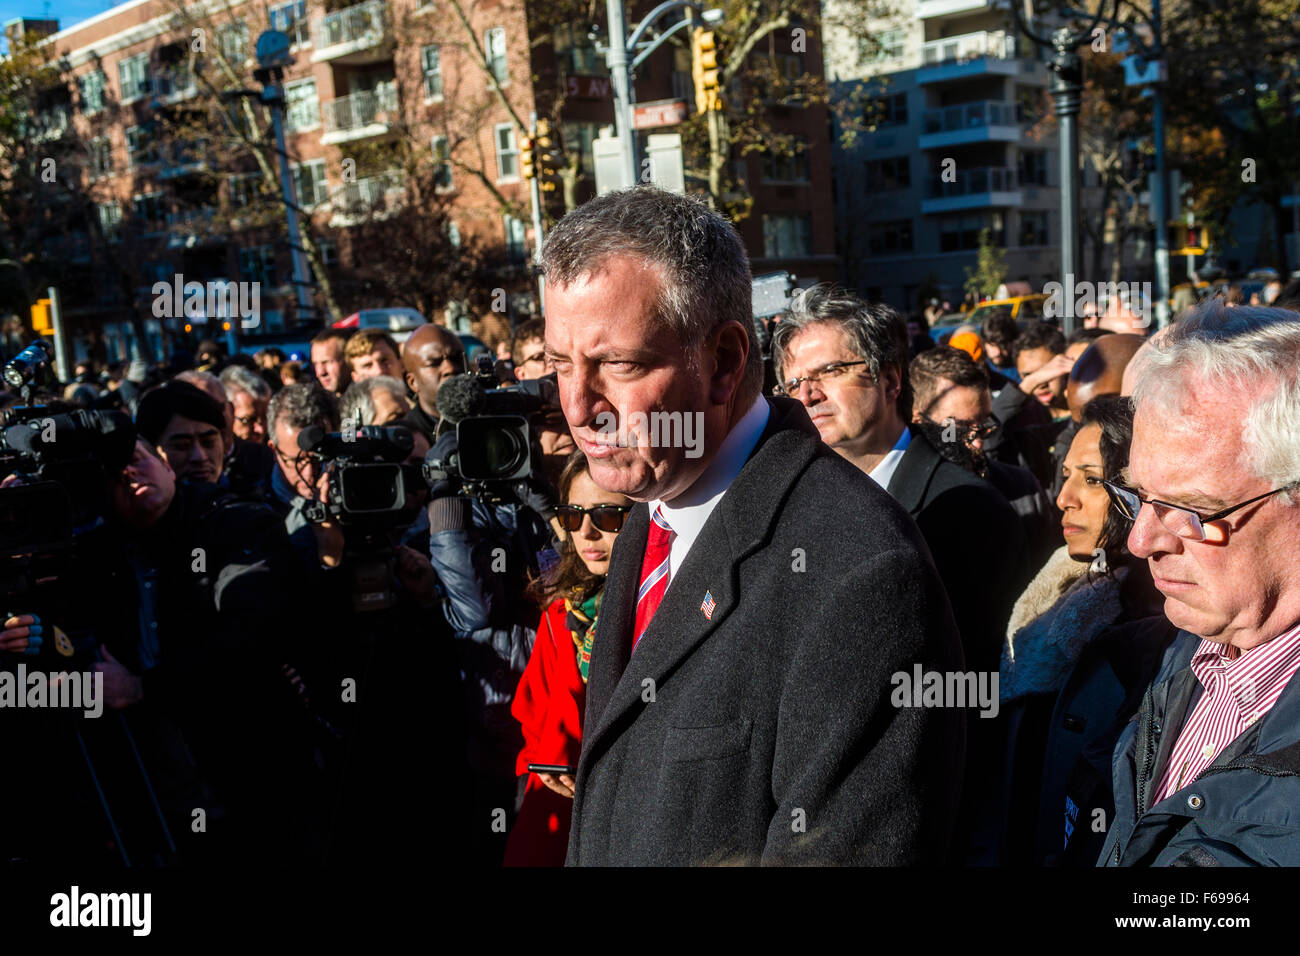 New York, NY - 14 November 2015 NYC  the Mayor Bill de Blasio news conference after attending a vigil in Washington - Stock Image